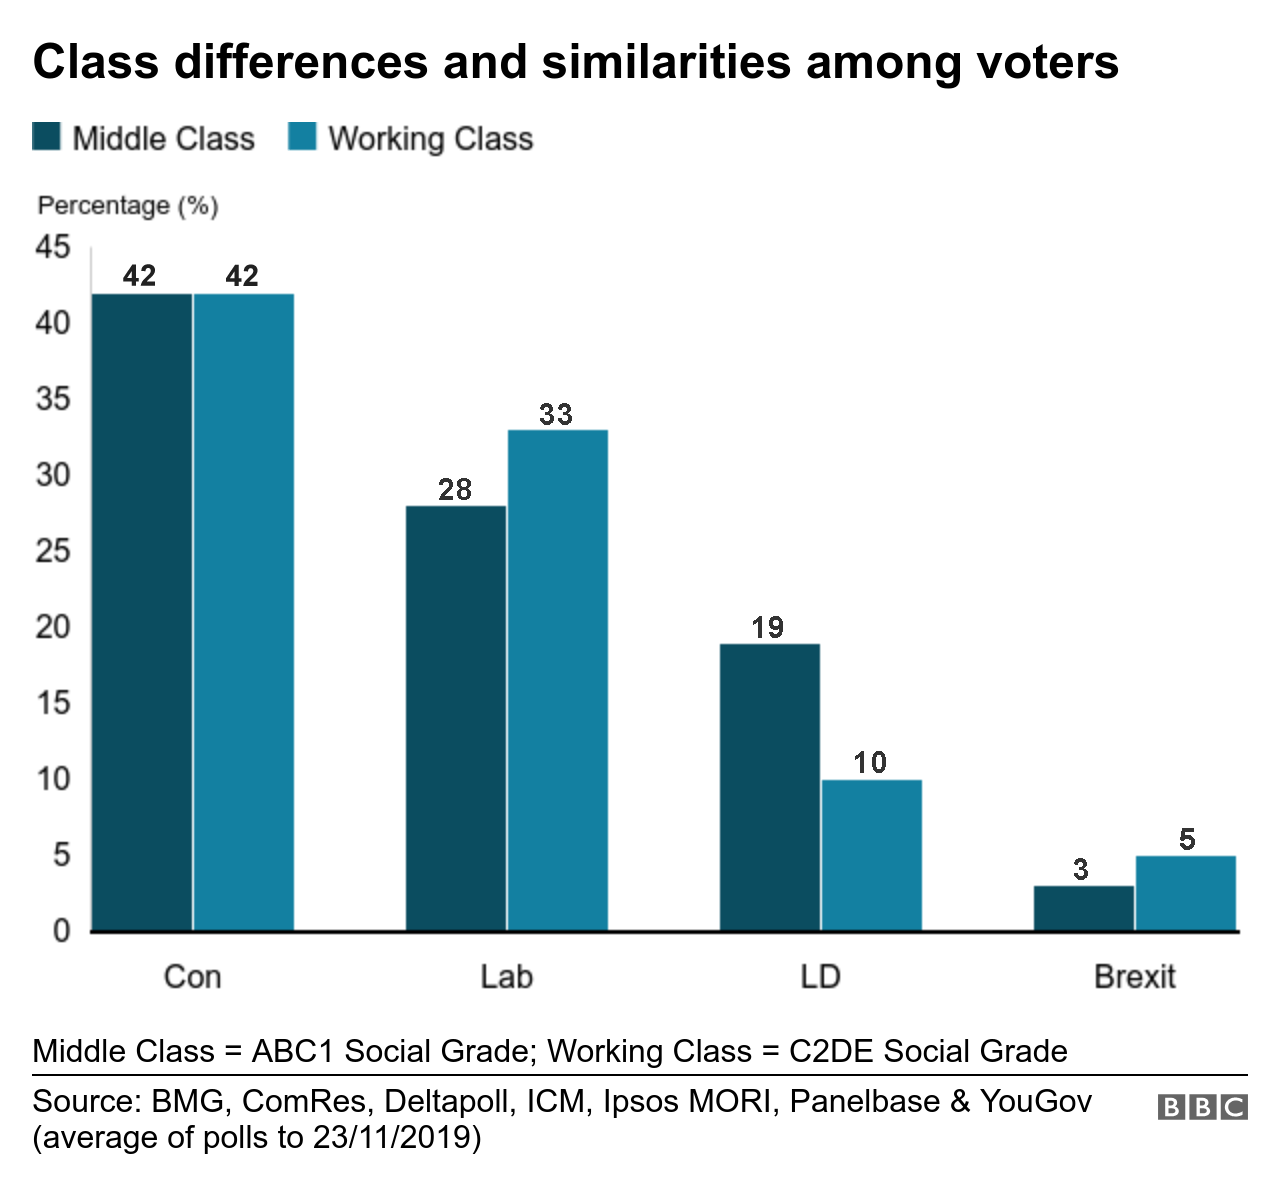 Class differences and similarities among voters